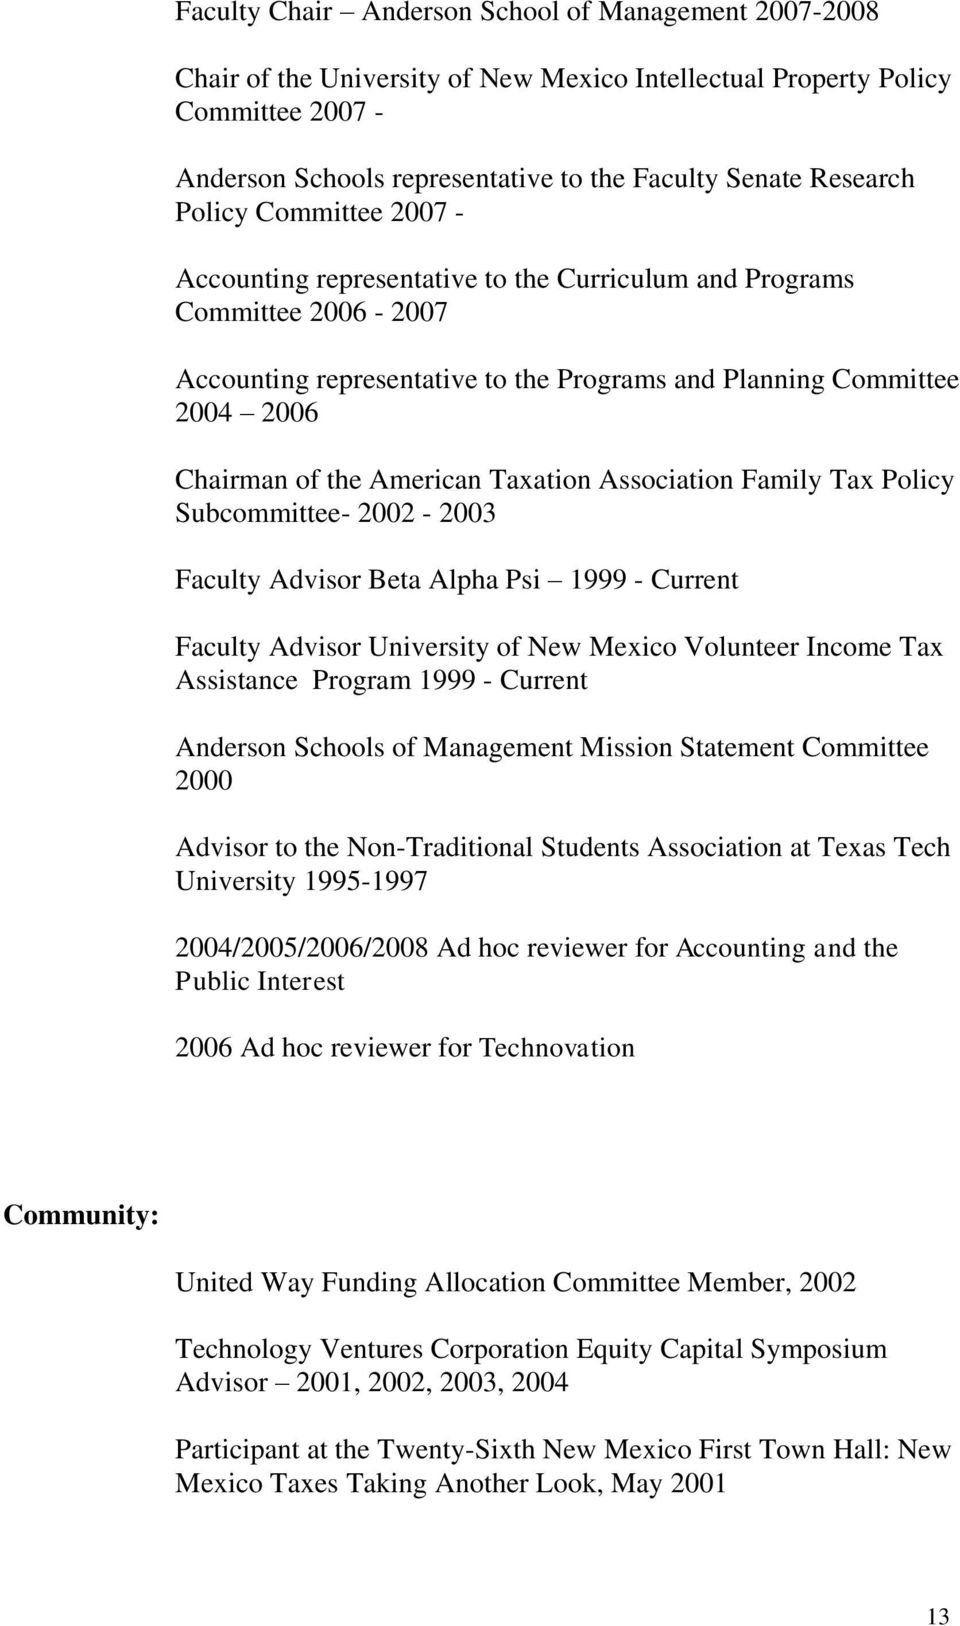 the American Taxation Association Family Tax Policy Subcommittee- 2002-2003 Faculty Advisor Beta Alpha Psi 1999 - Current Faculty Advisor University of New Mexico Volunteer Income Tax Assistance